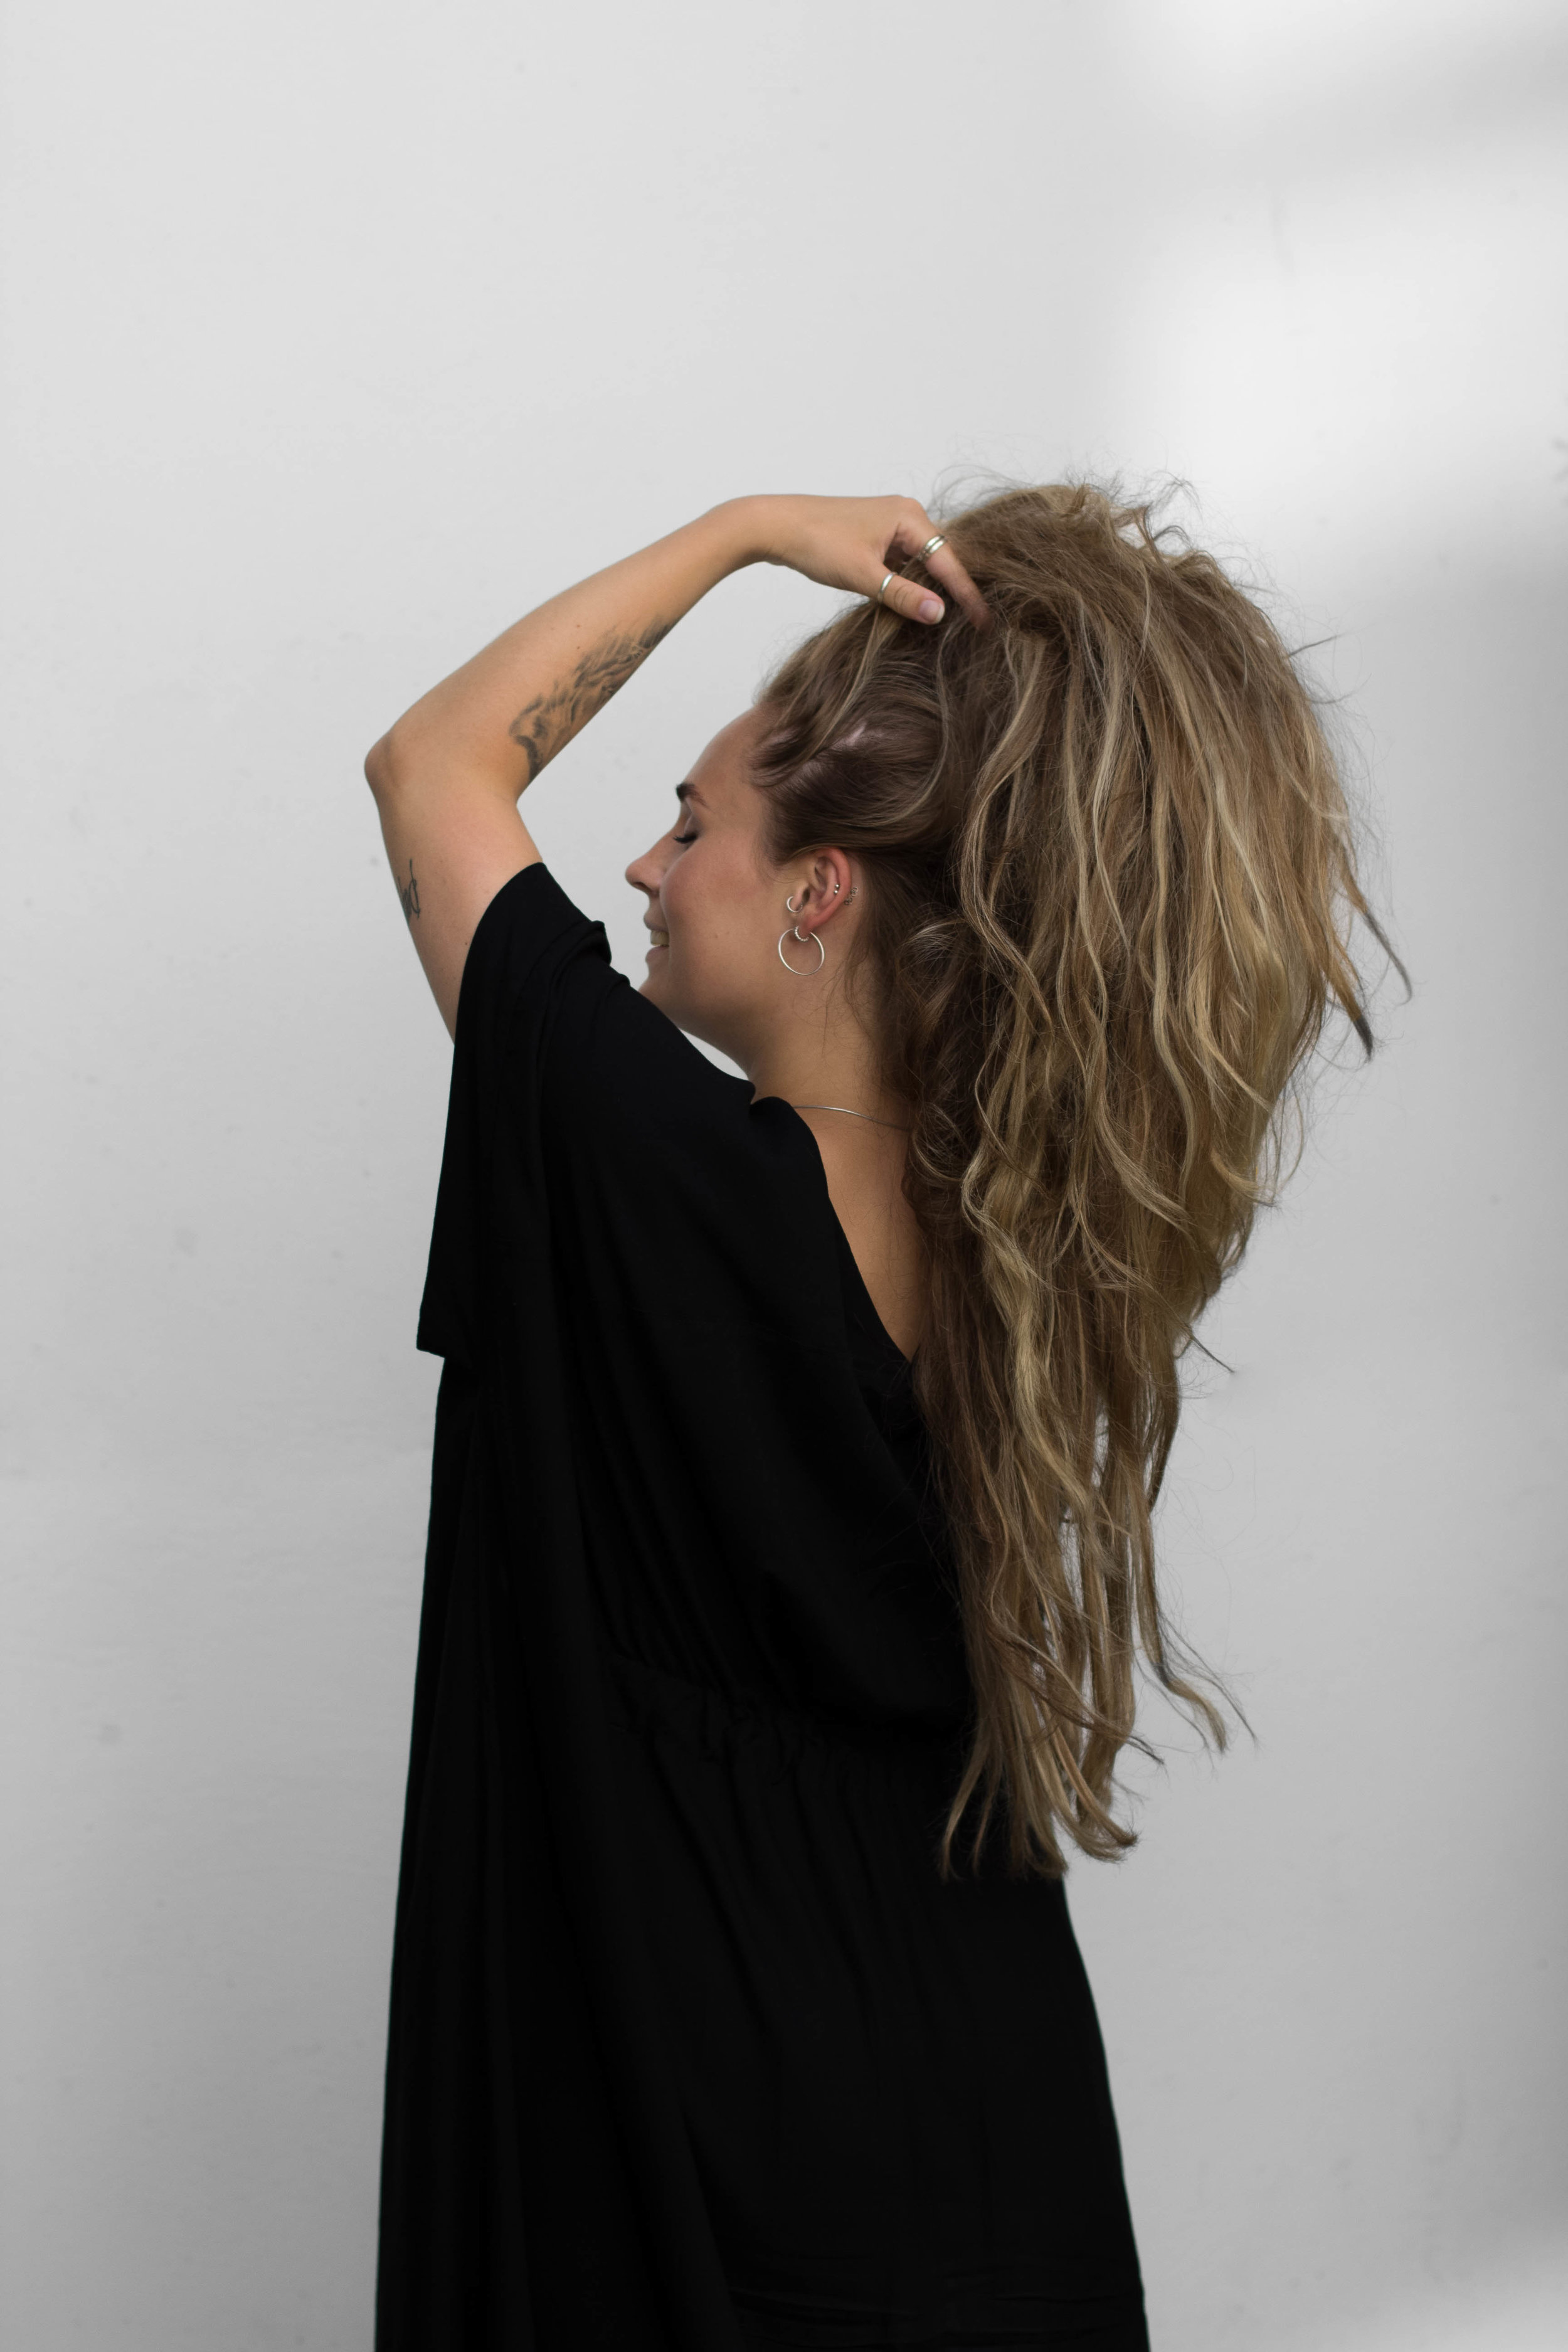 löwengrip, haircare, silvershampo,aboutthatlook, haircare, blondehair